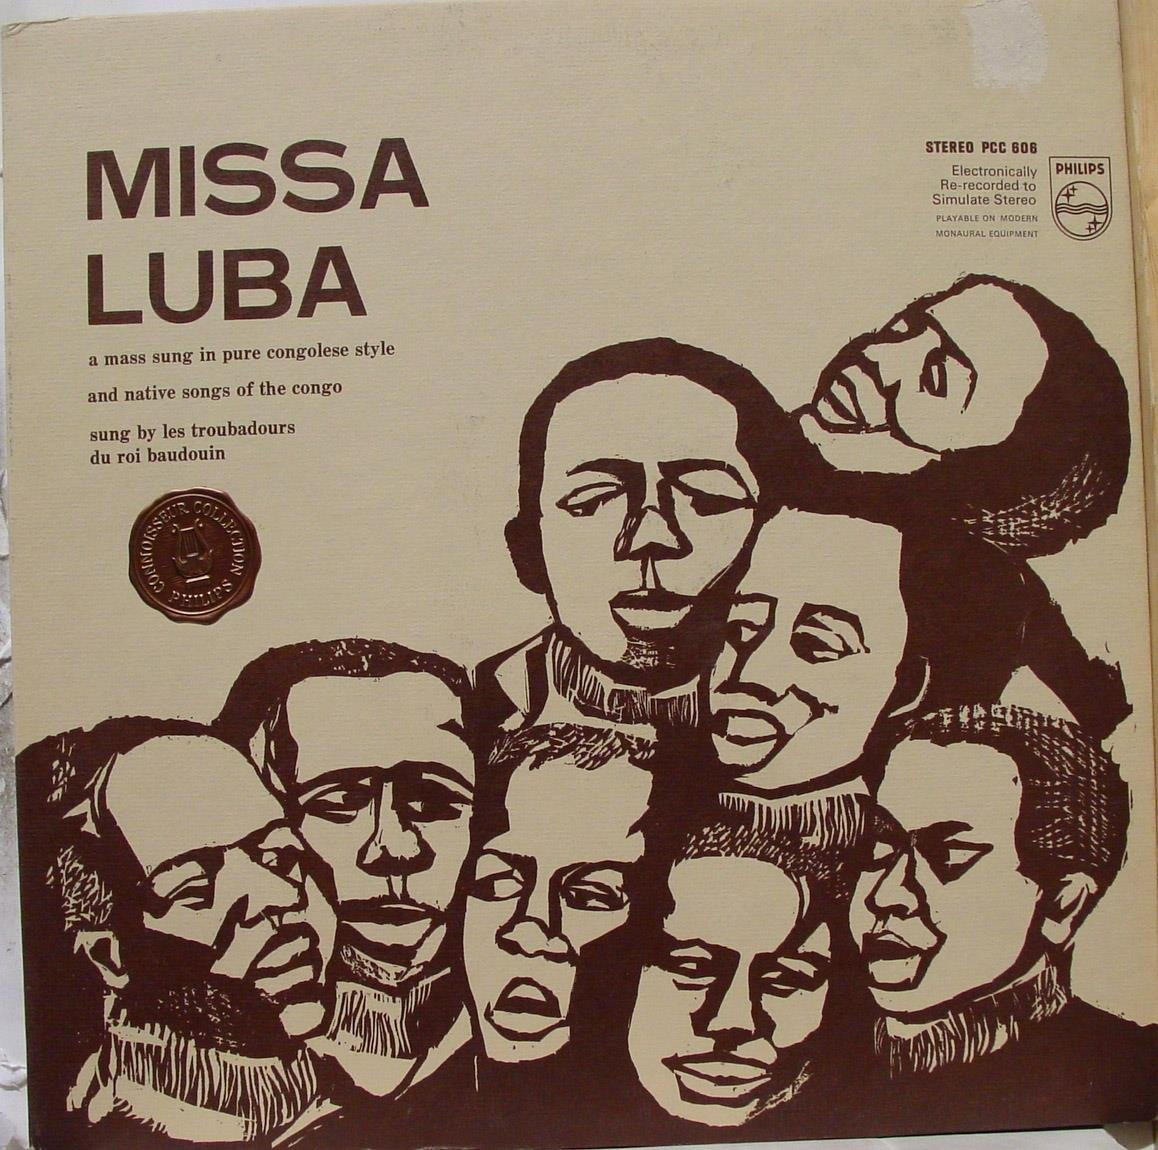 Missa Luba: A Mass Sung in Pure Congolese Style and Native Songs of the Congo by Philips